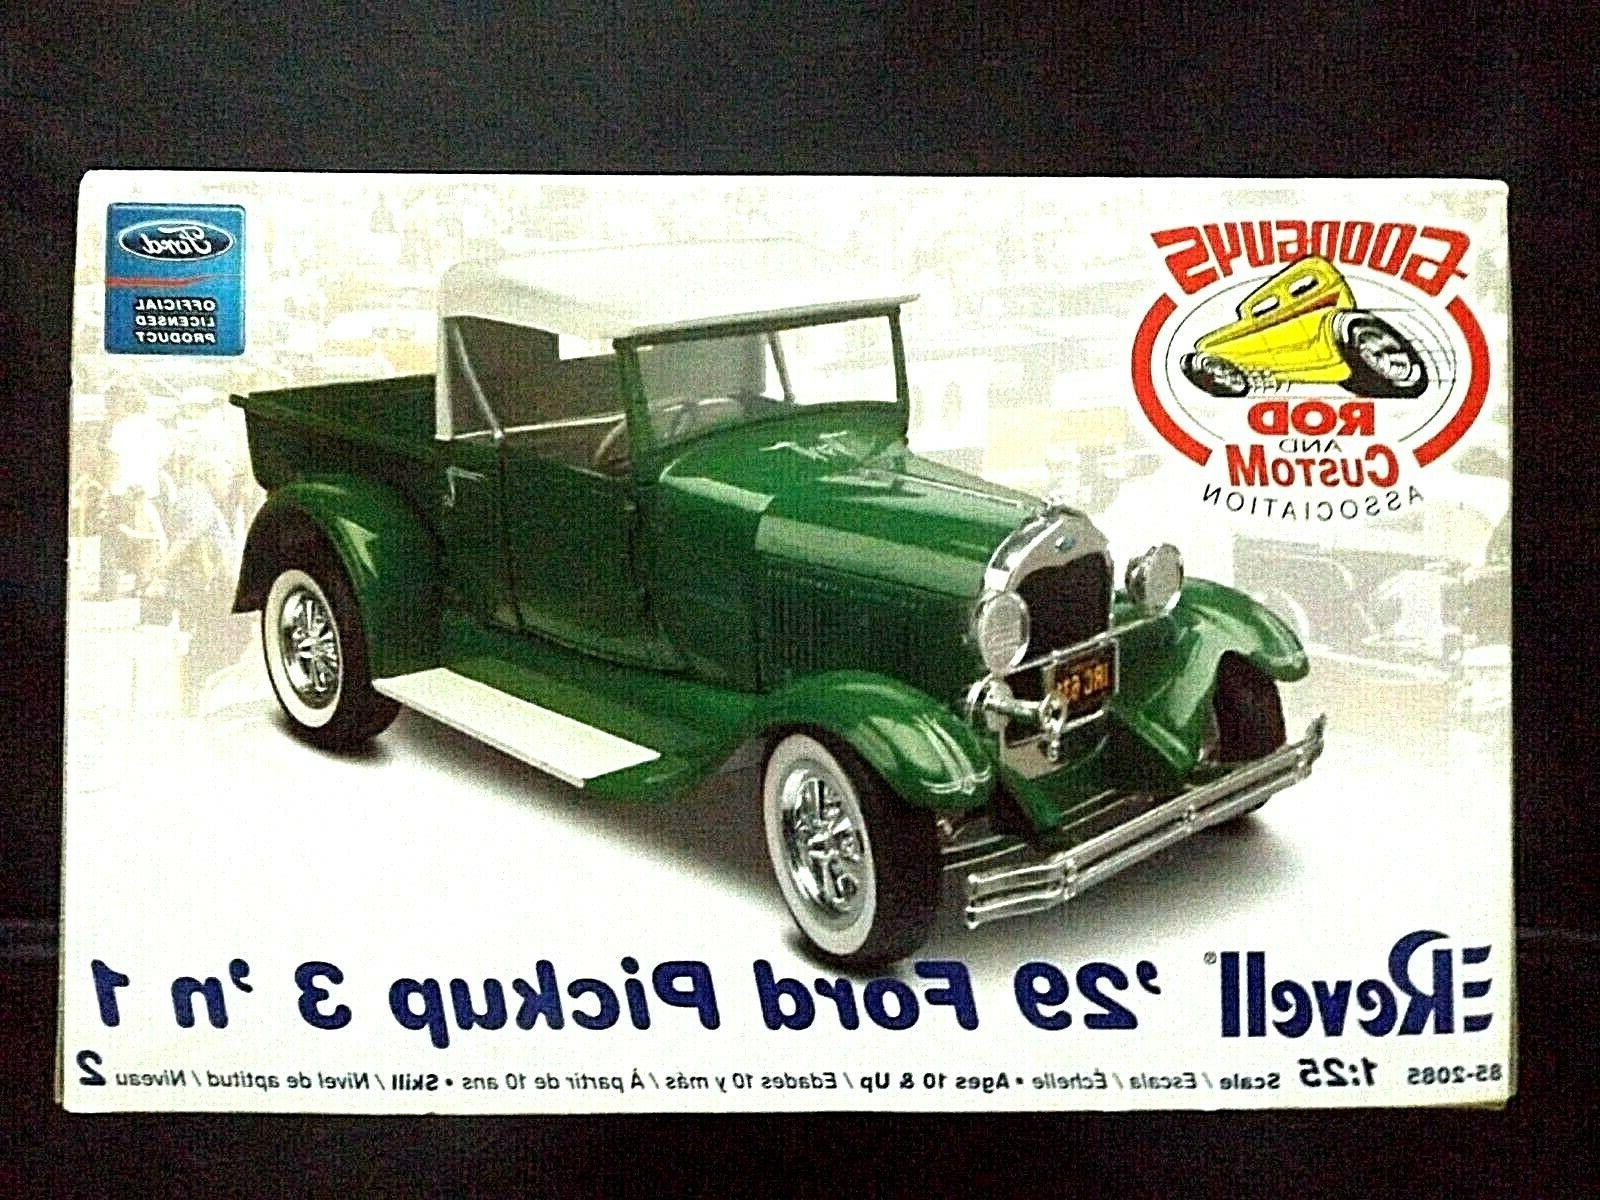 Model Kit Pickup Goodguy's & 1:25